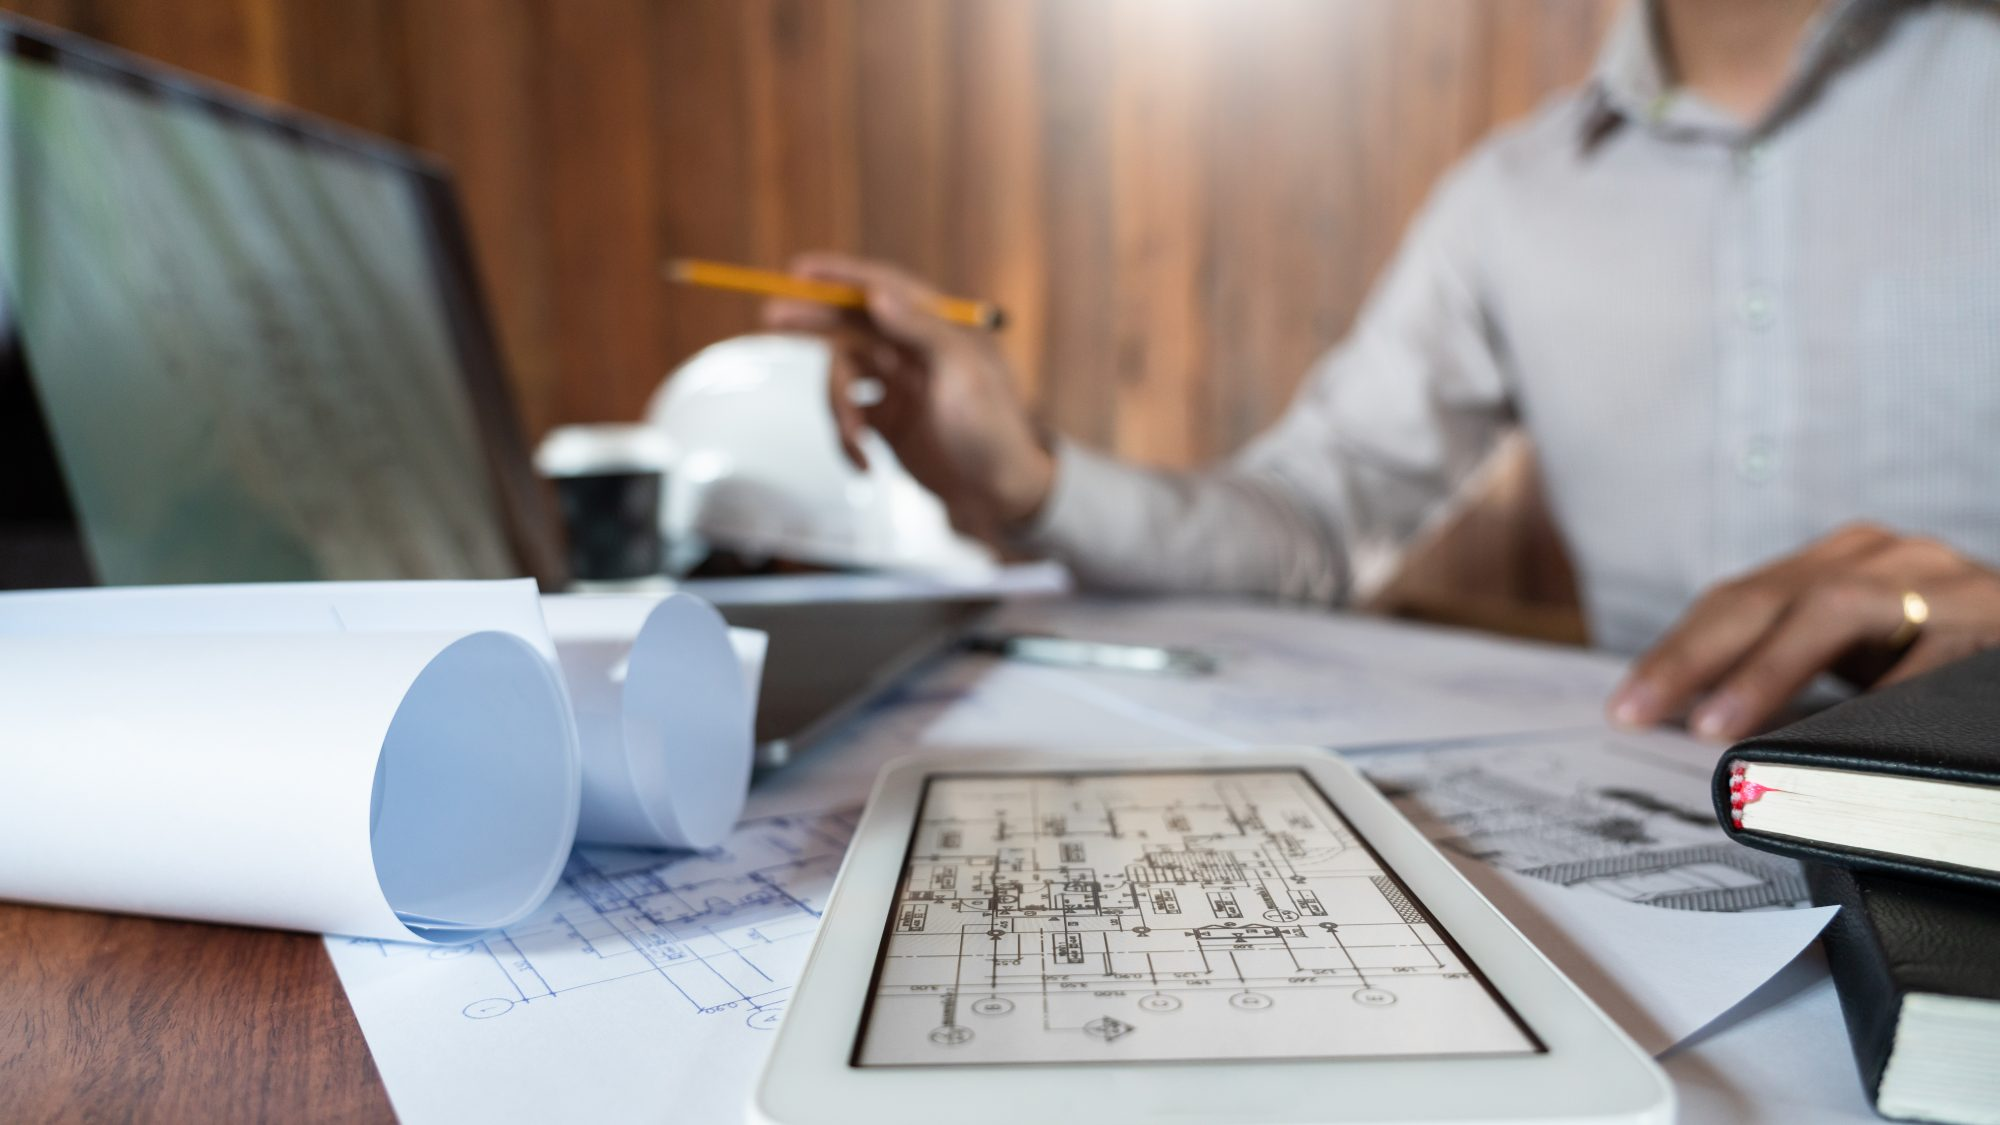 The road to digitalisation in the construction industry